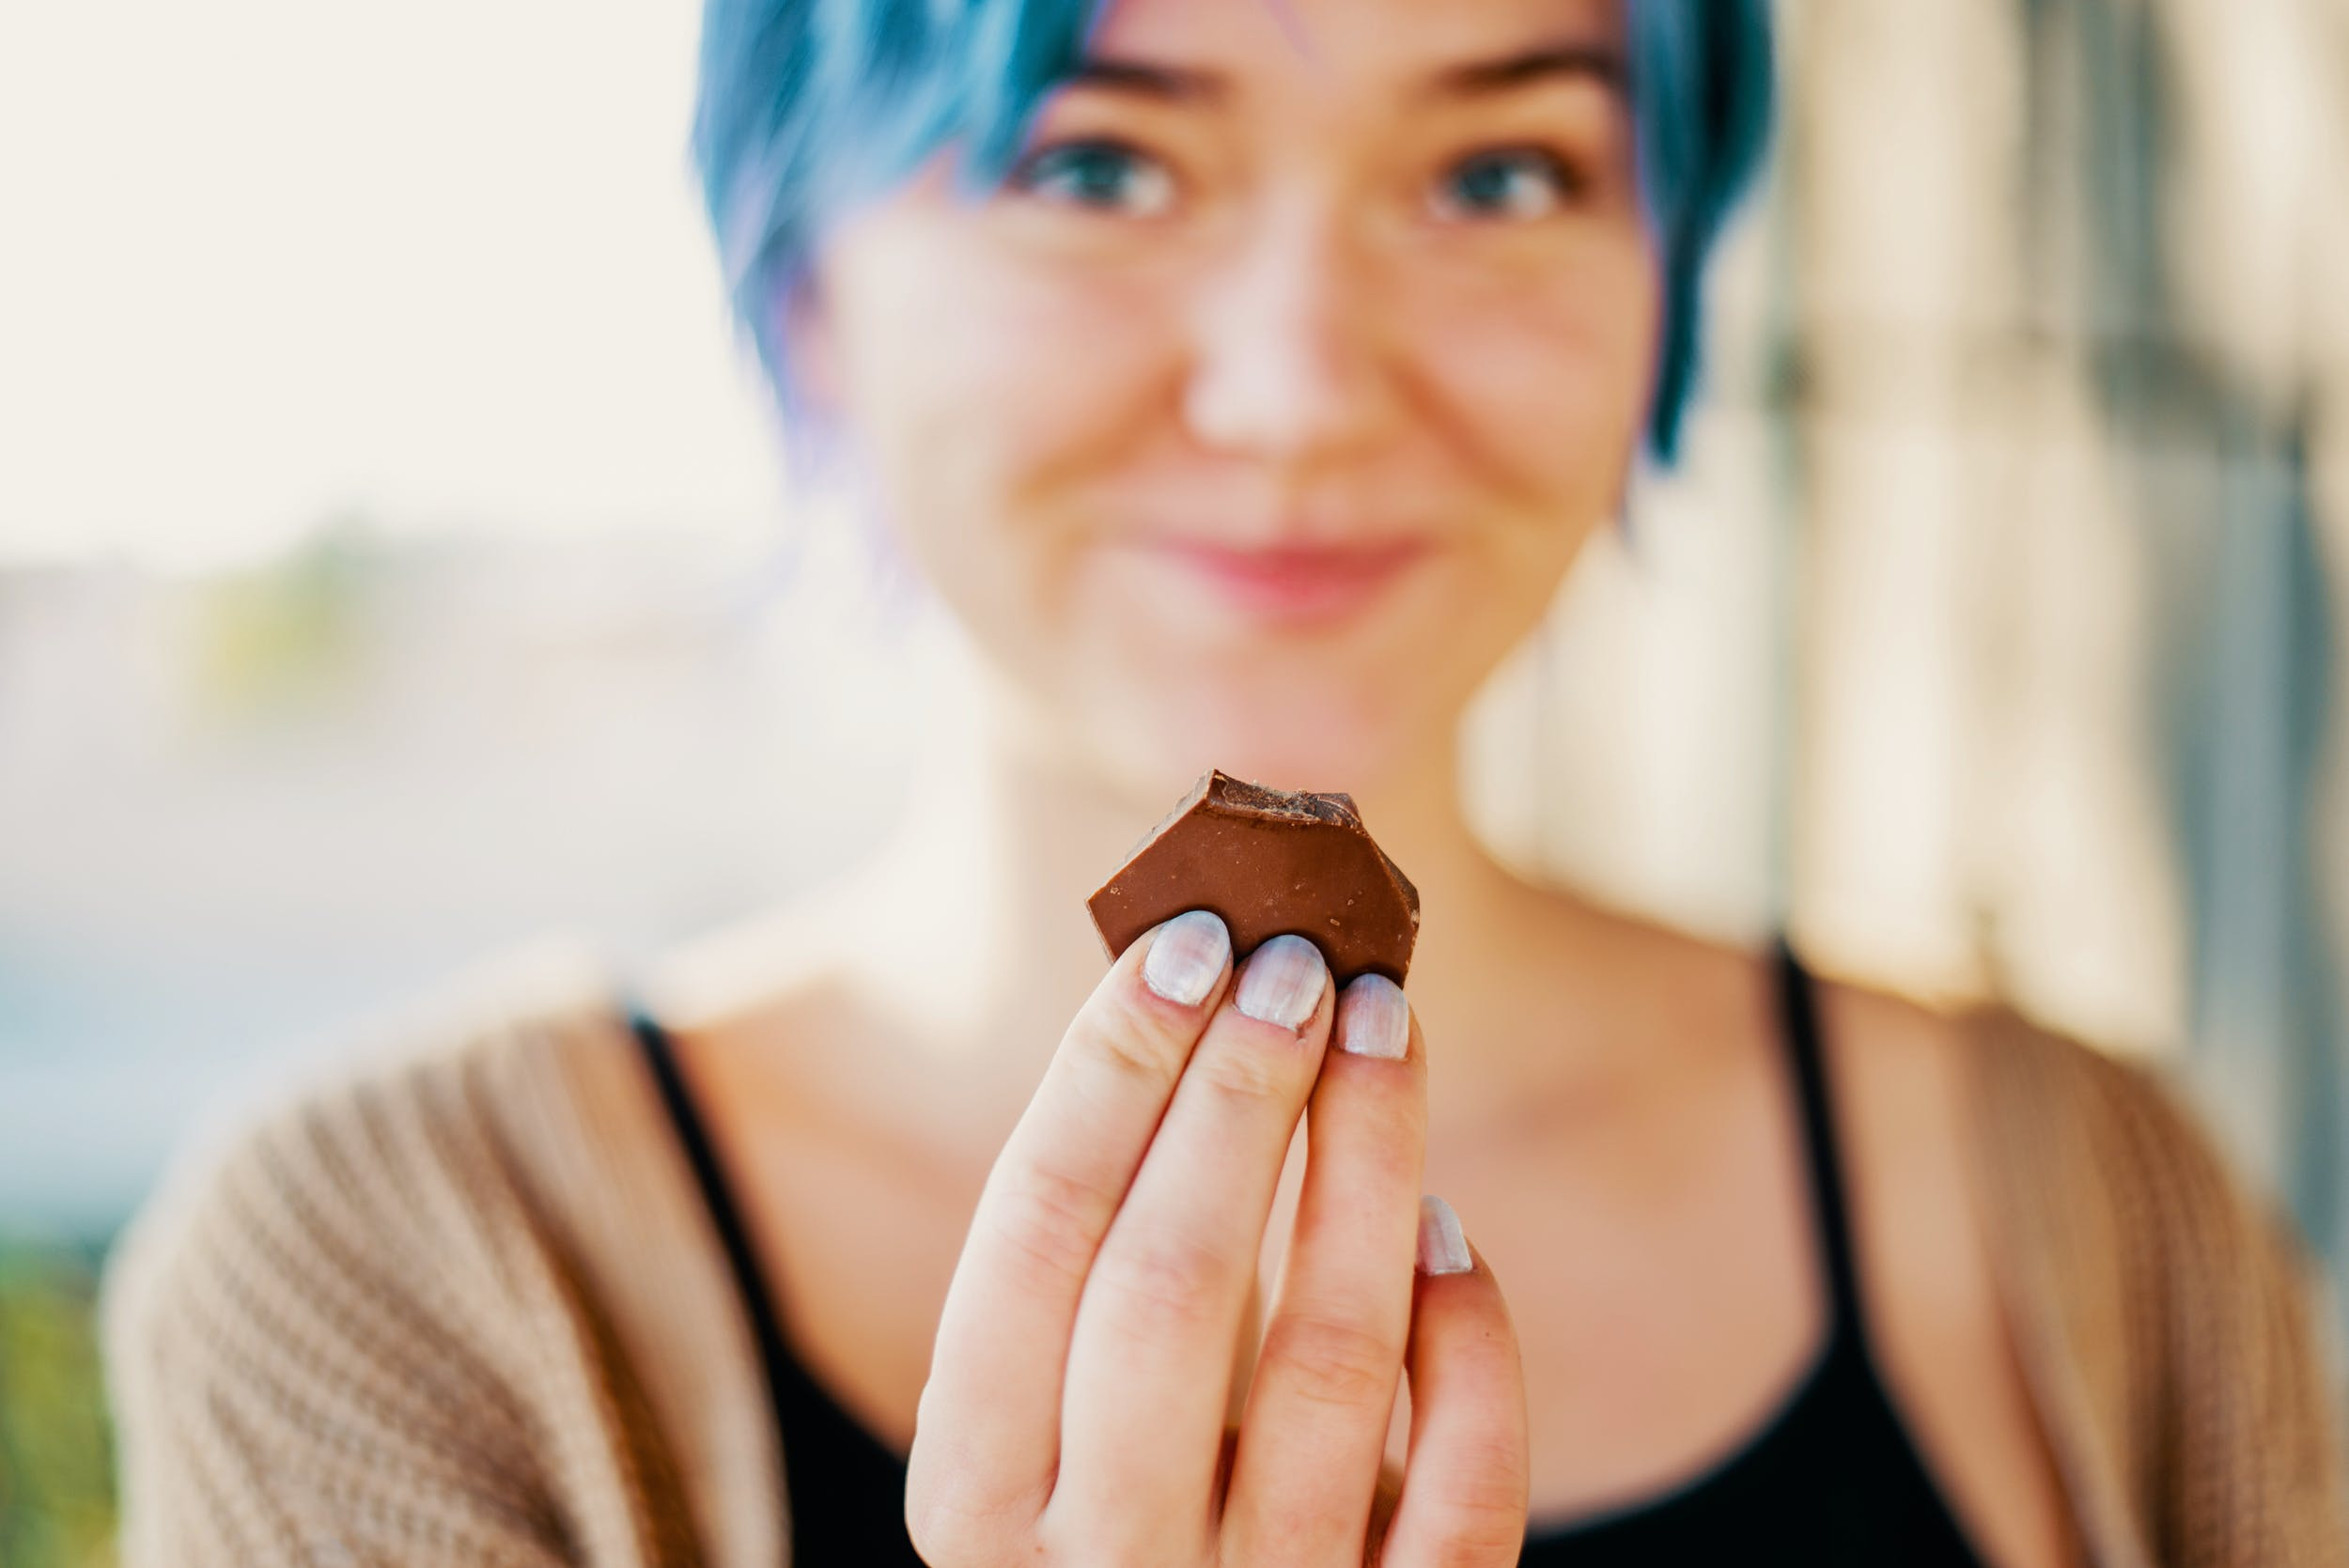 Best CBD Weed Chocolate 19 This Is The Best Weed Chocolate and CBD Chocolate Money Can Buy